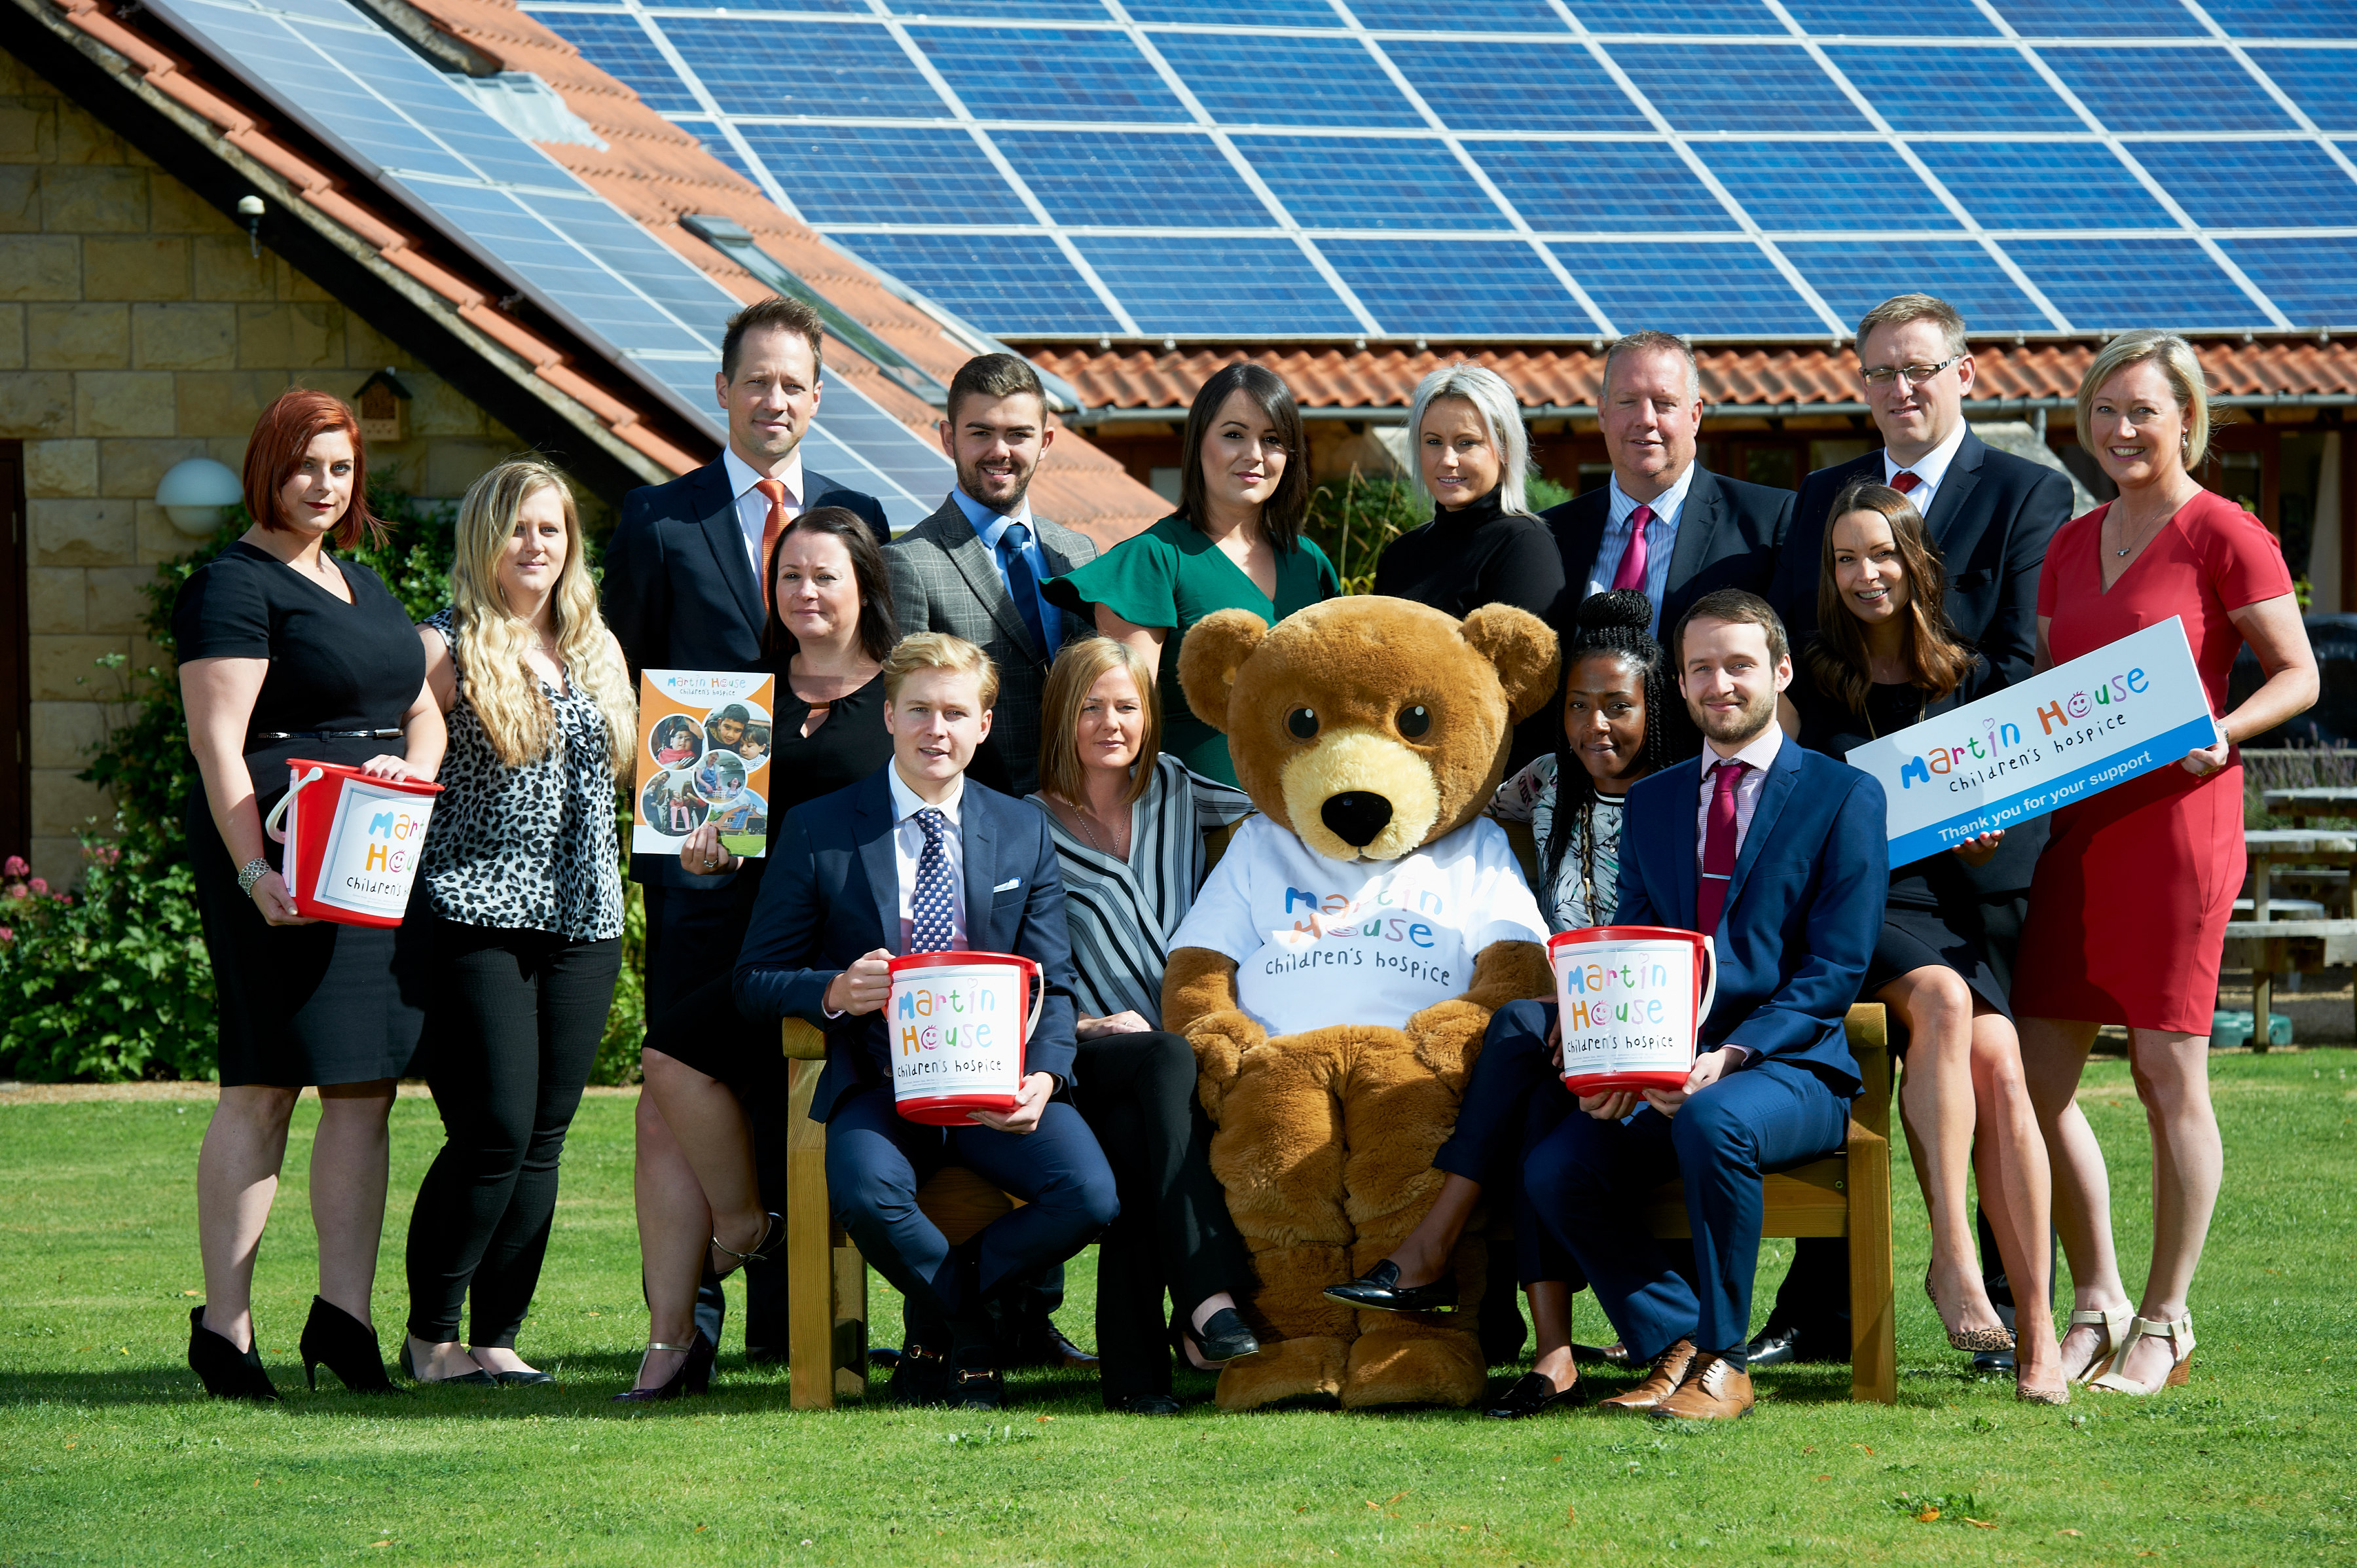 Linley & Simpson launches year of support for Martin House